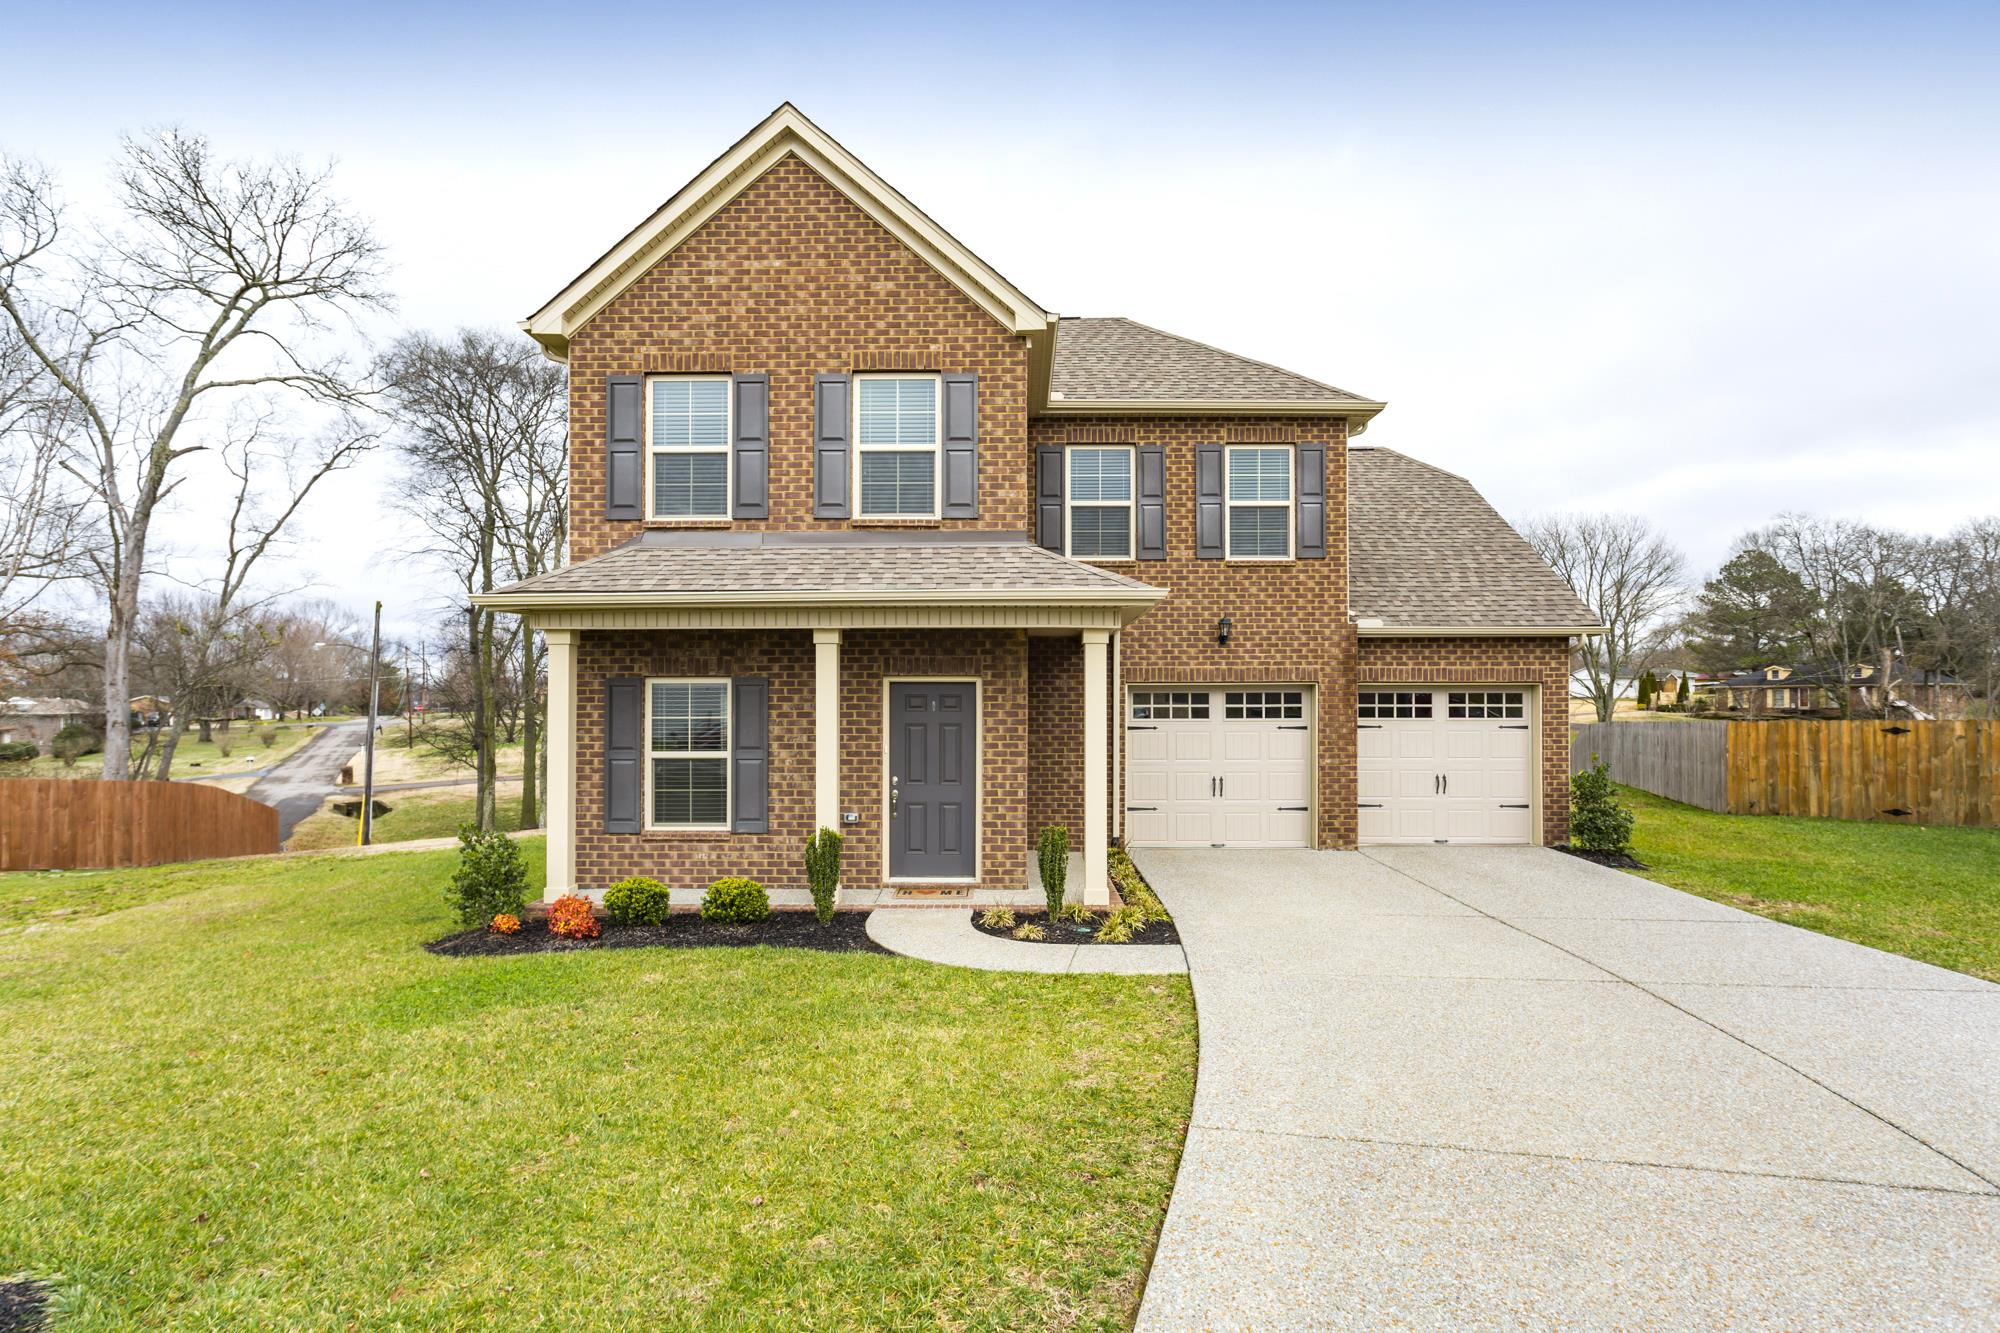 236 LEAH CT., Gallatin, Tennessee